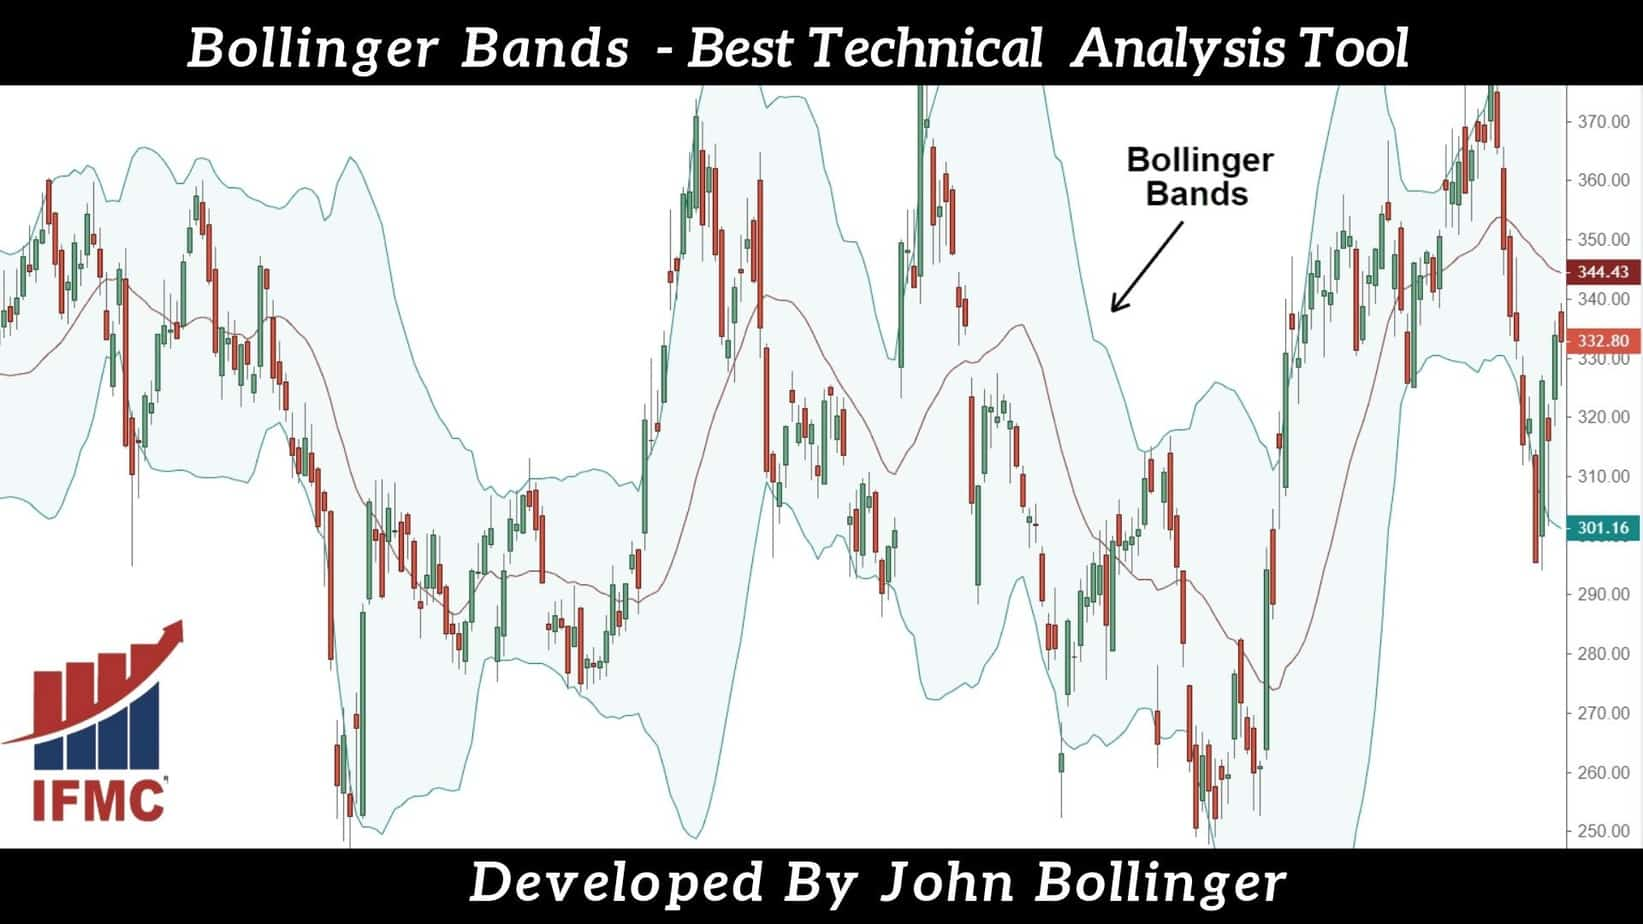 Ultimate Guide to Bollinger Bands – Learn Best Technical Analysis Indicator to Make Money in Stock Market